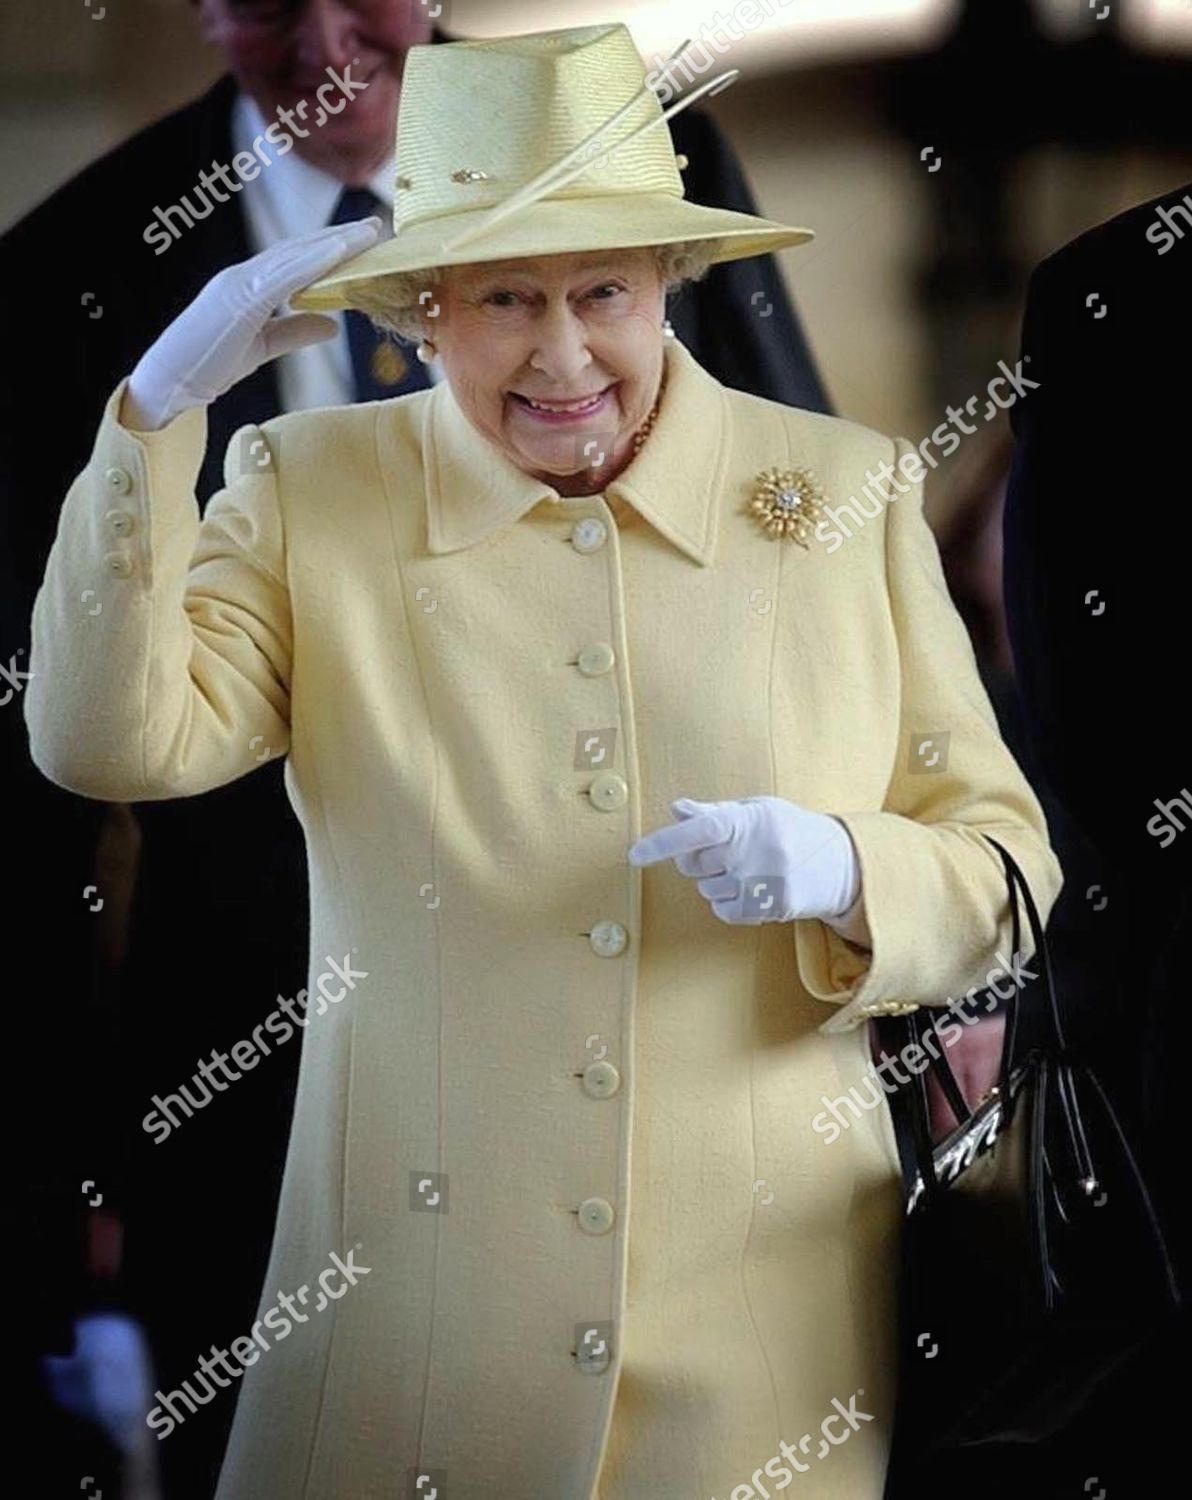 Queen Elizabeth II Editorial Stock Photo - Stock Image | Shutterstock